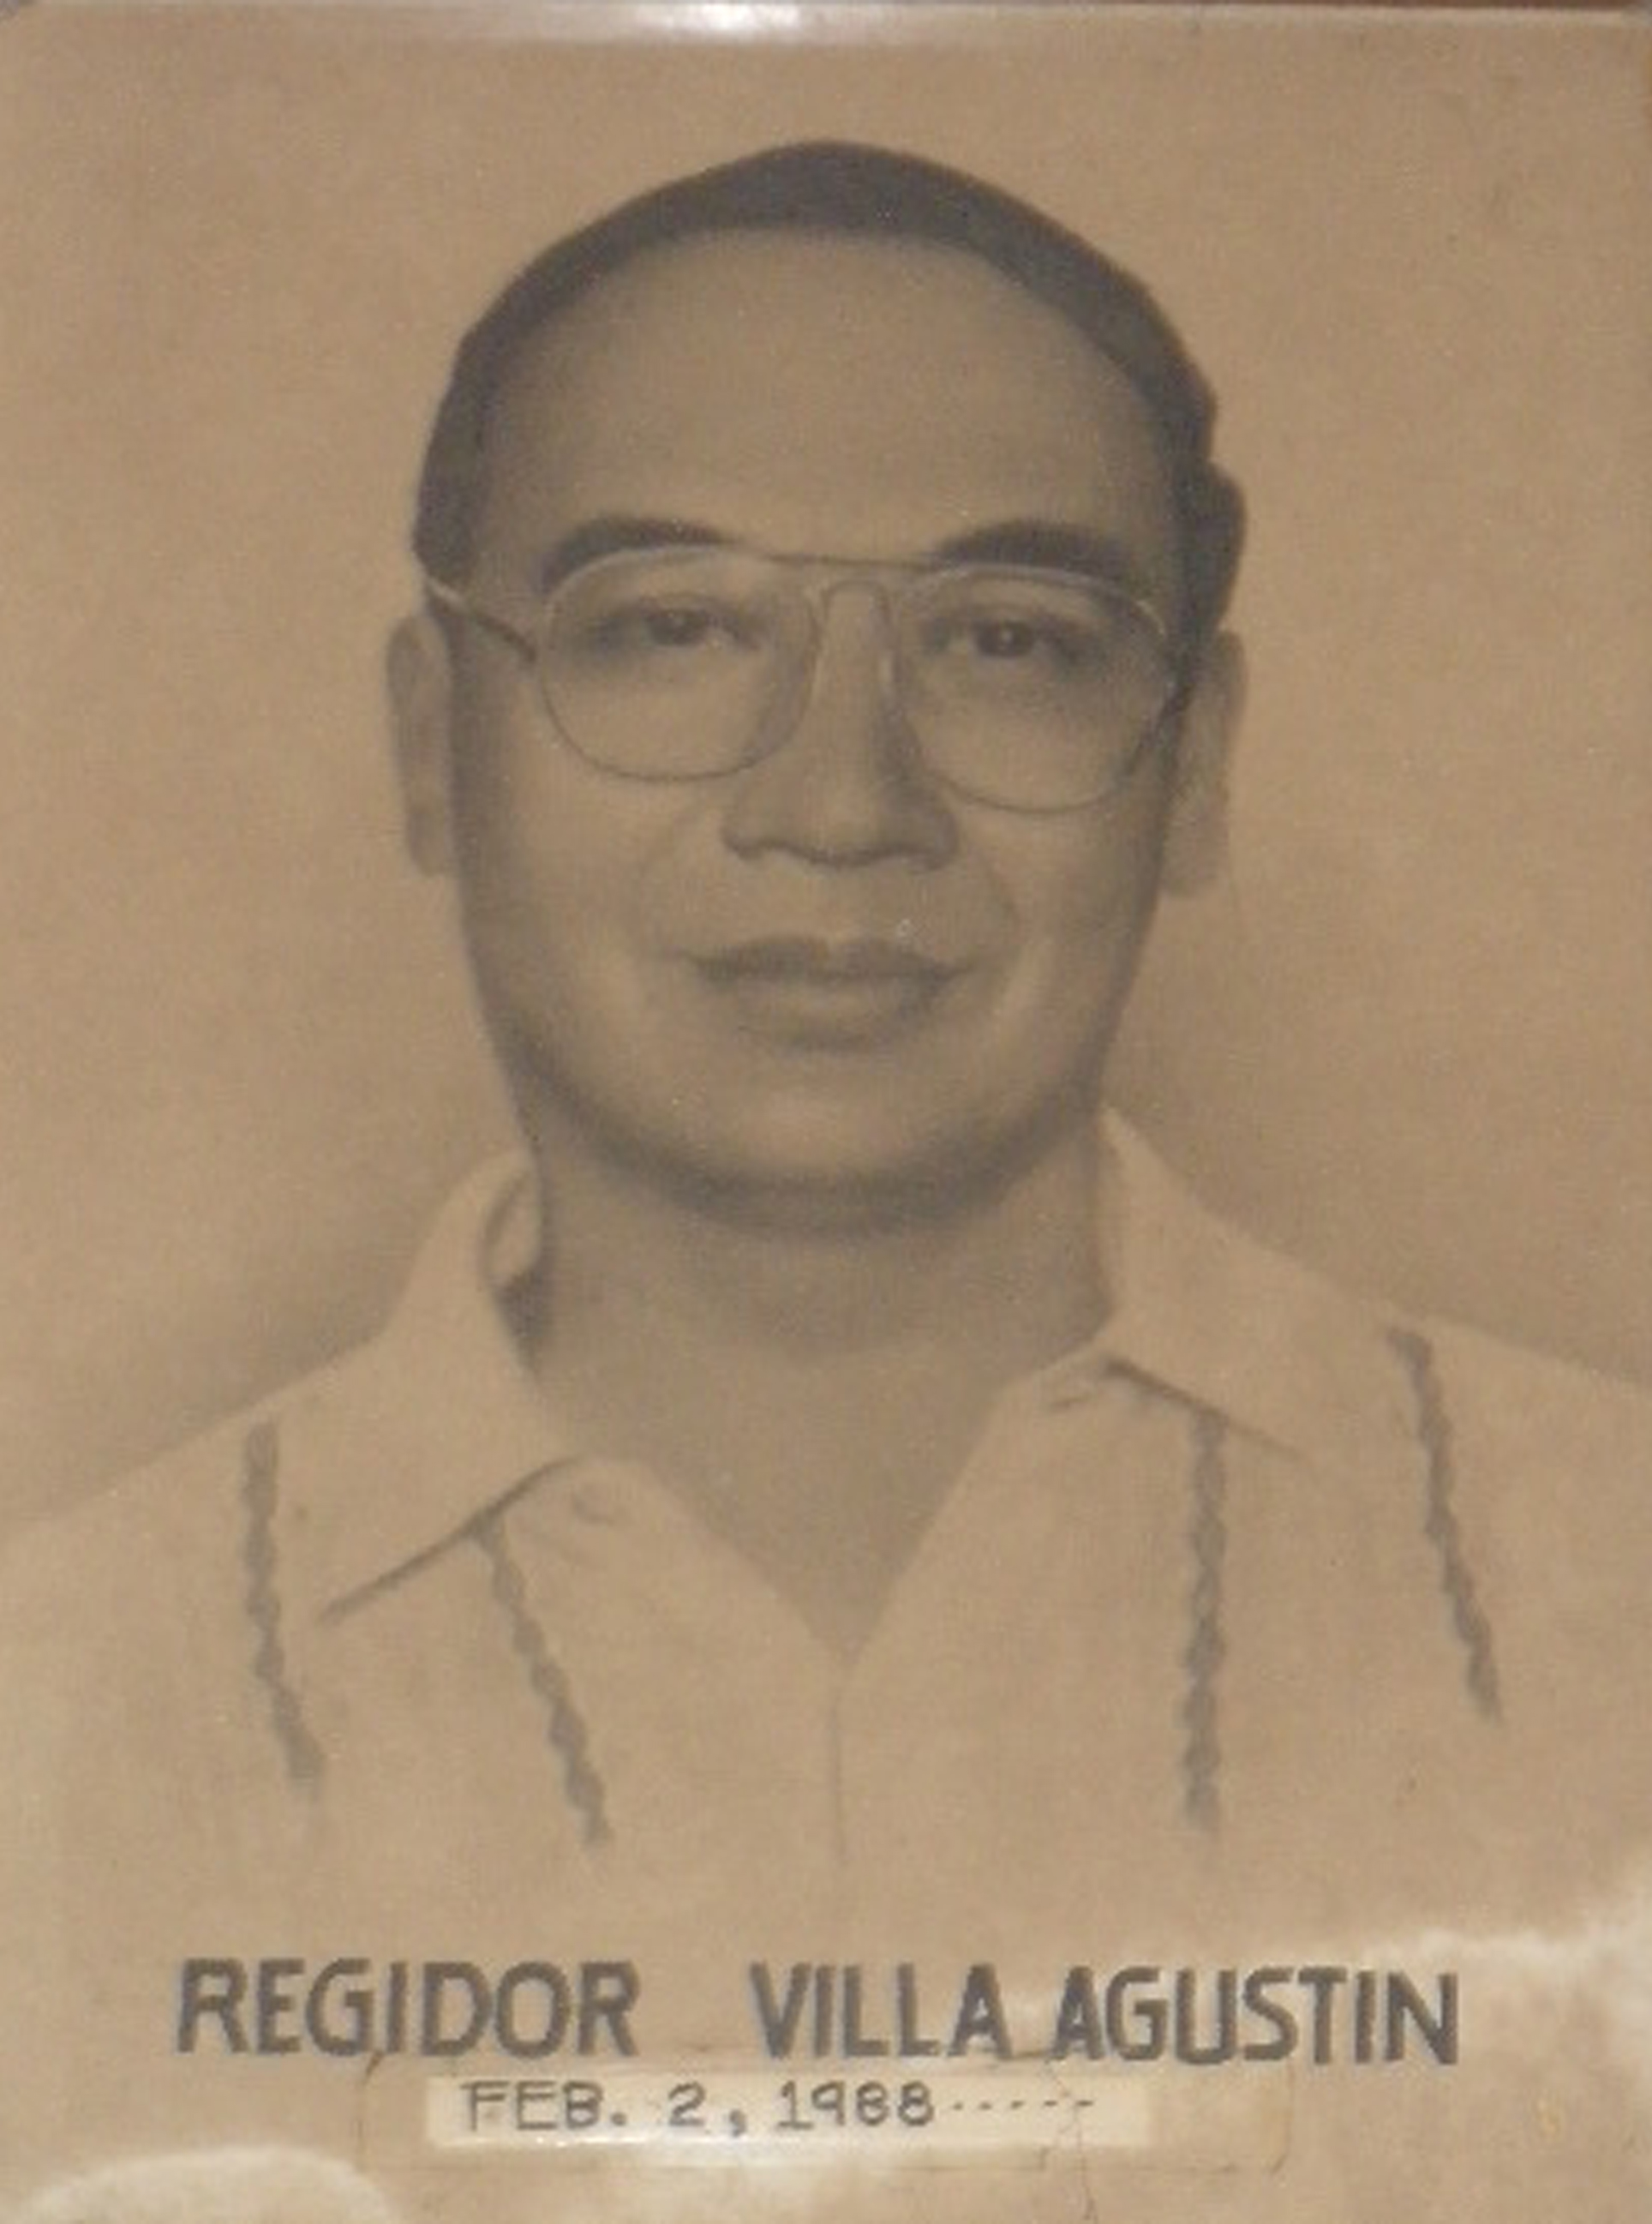 Mayor Regidor Villa Agustin (Feb 2 1988-June 30 1998)